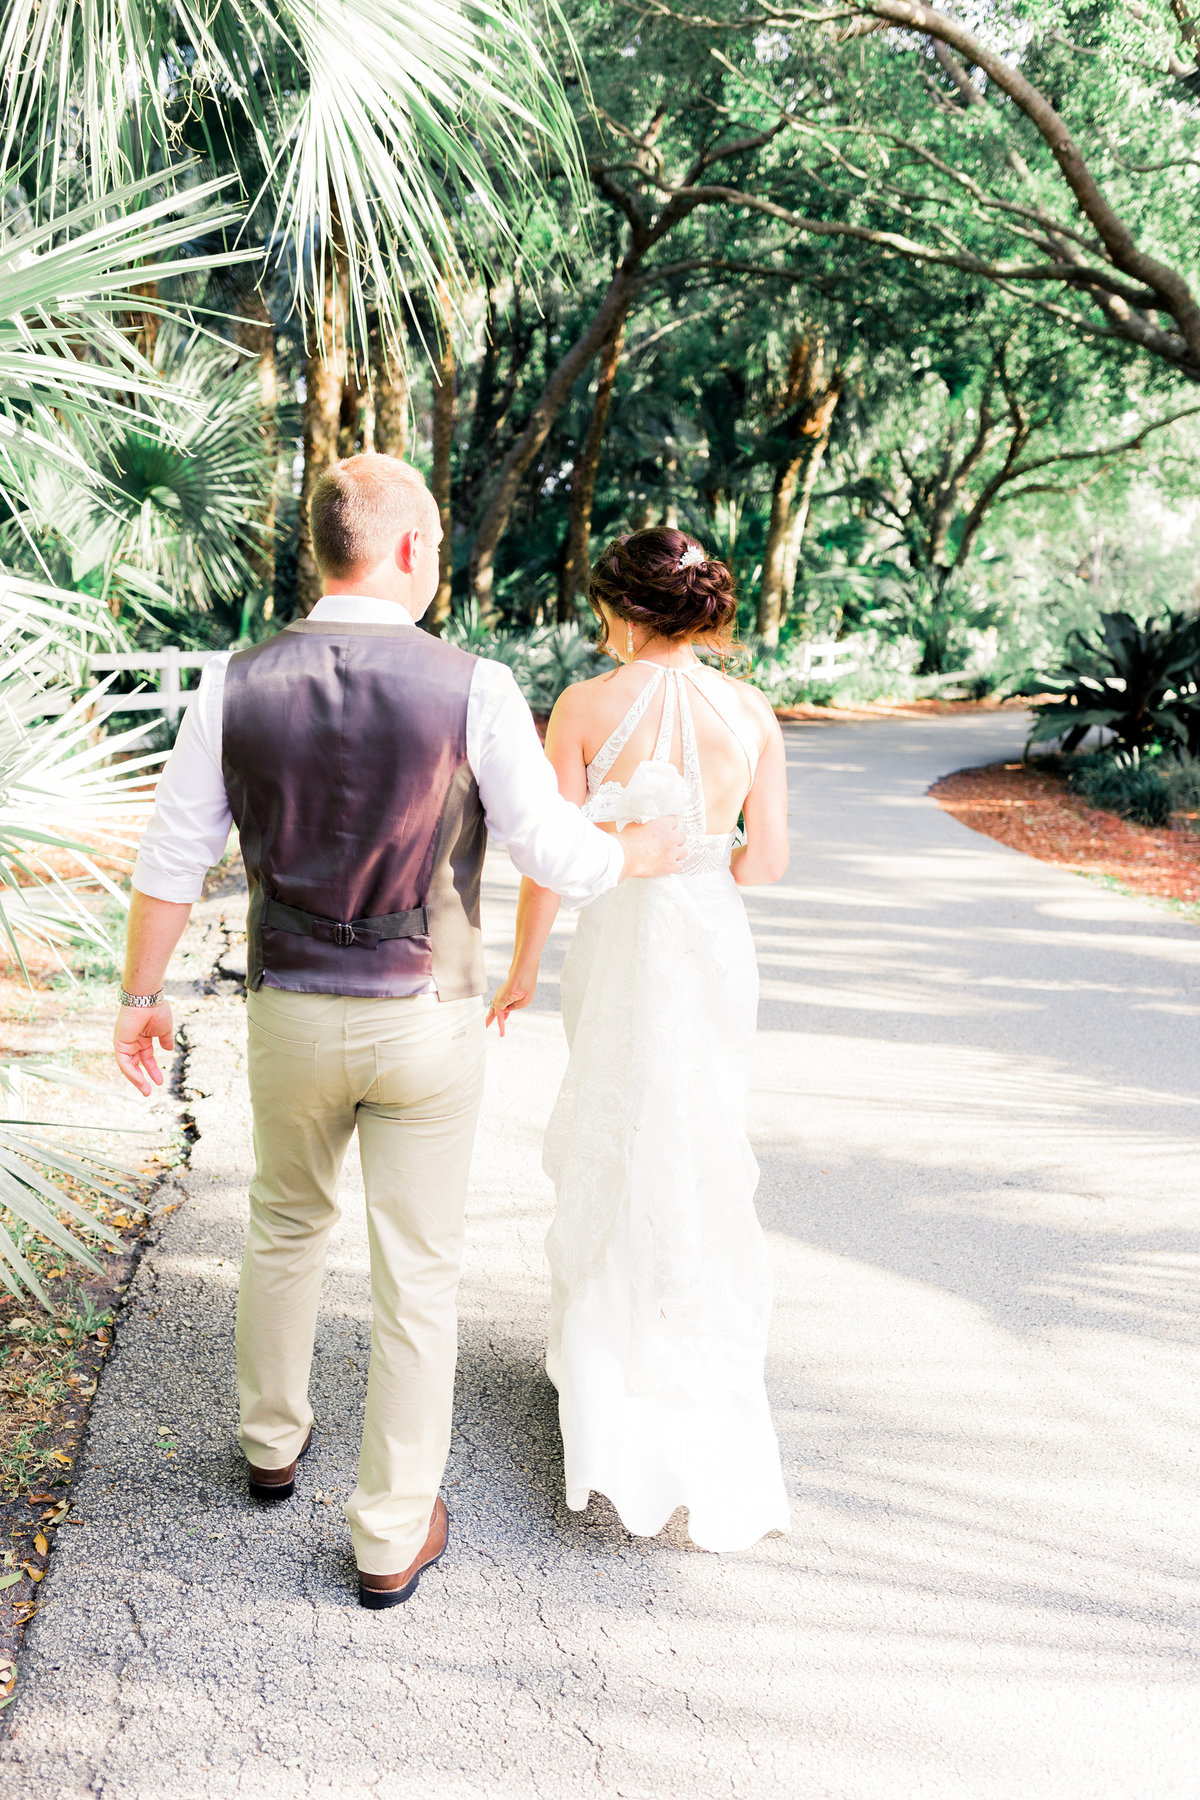 kimberly-hoyle-photography-kelly-david-grant-florida-wedding-67